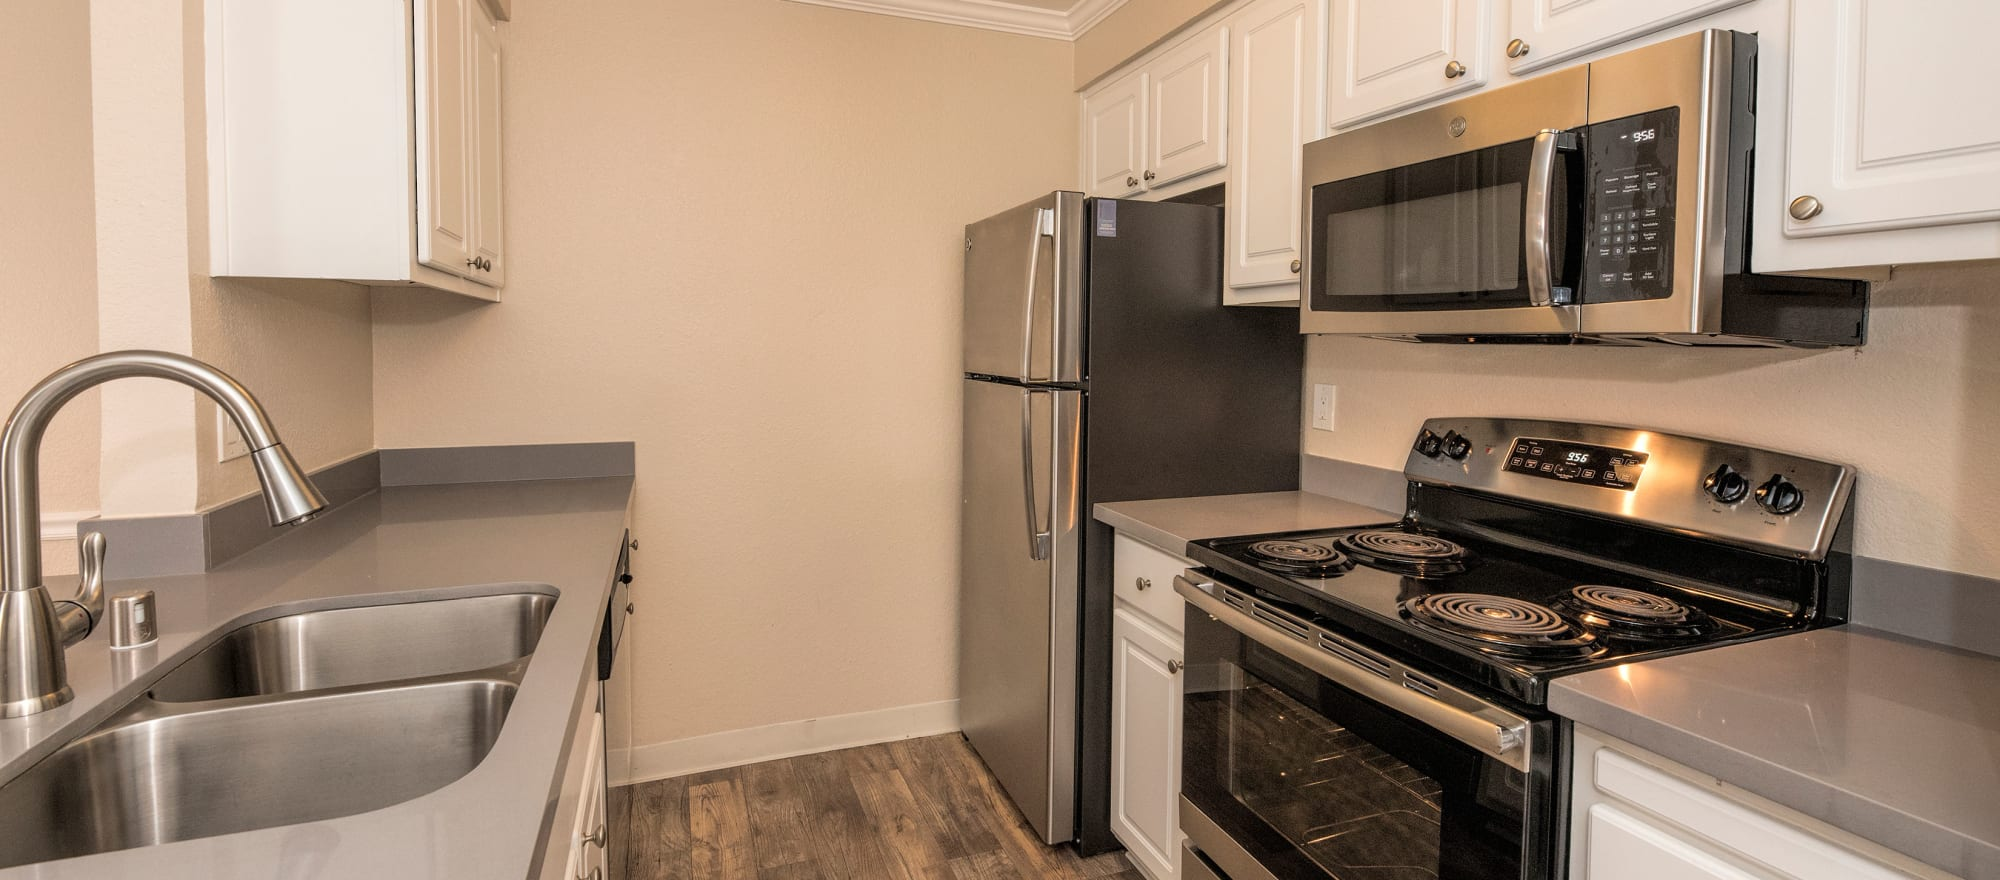 Model kitchen with stainless-steel appliances at Sterling Heights Apartment Homes in Benicia, California